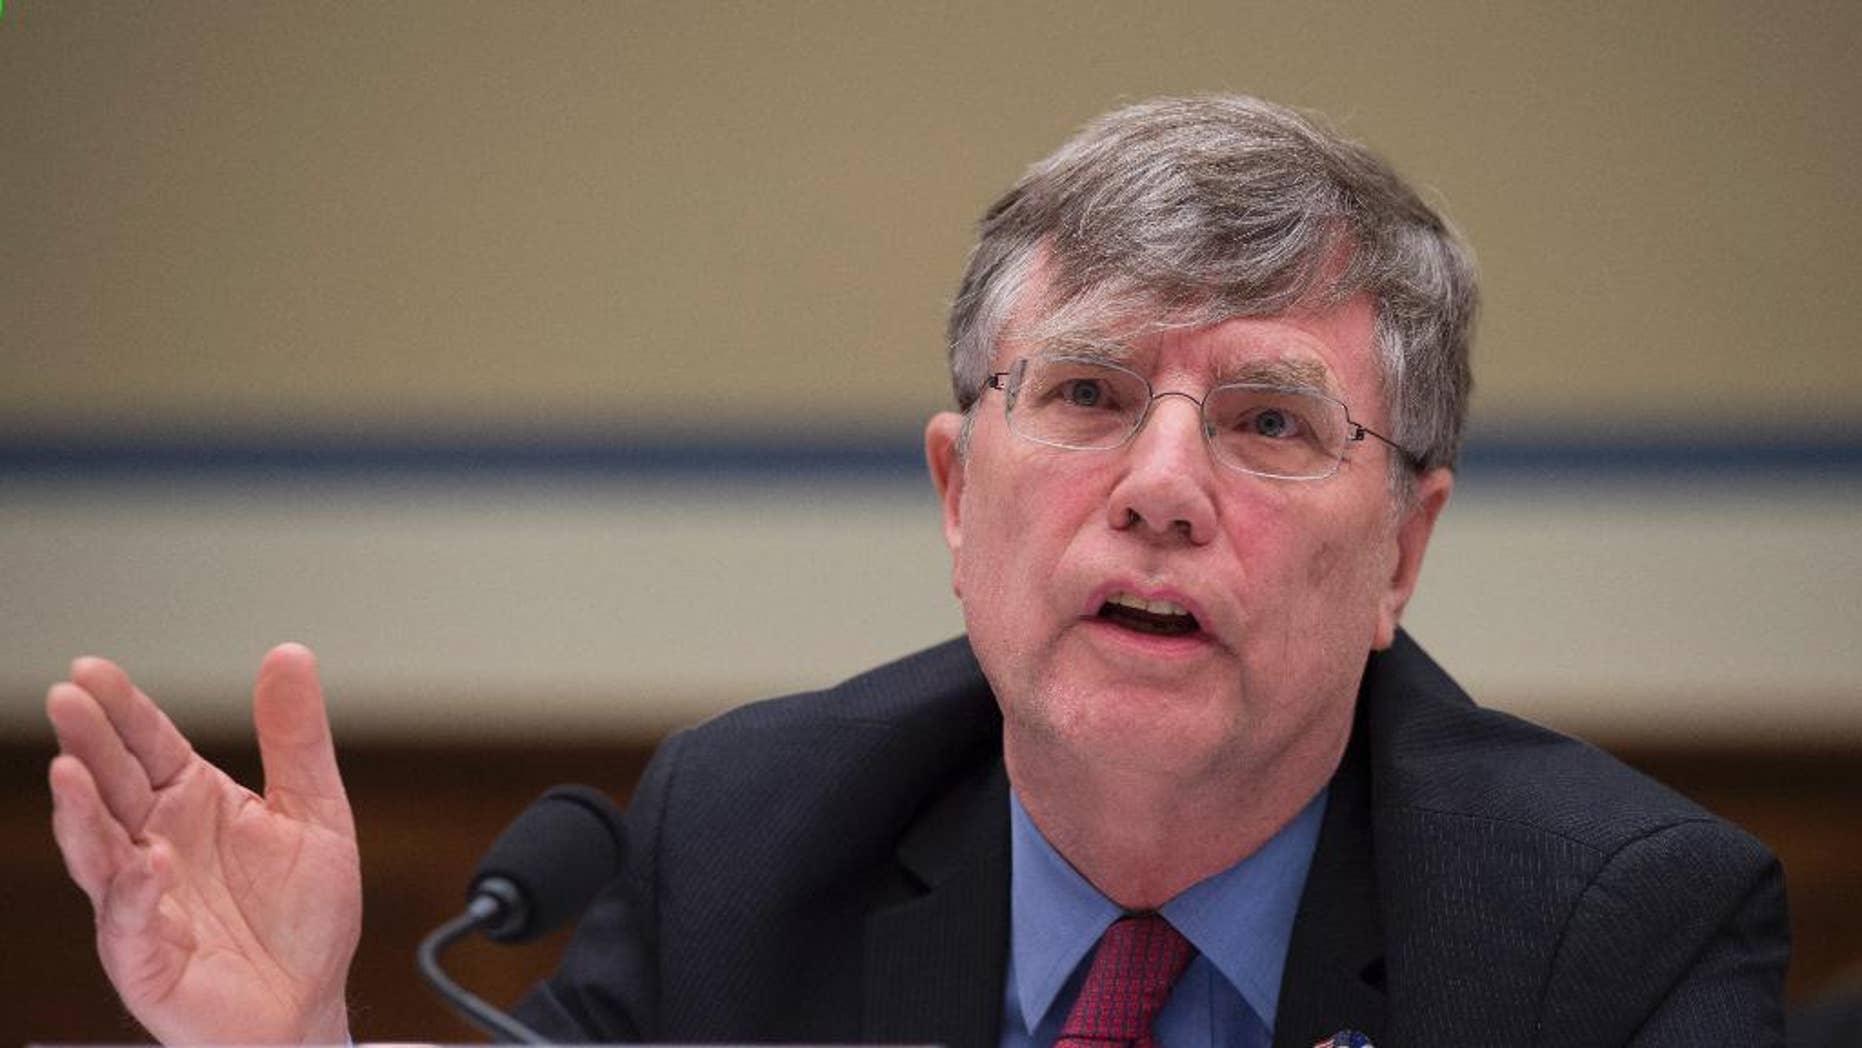 """FILE - In this Sept. 8, 2016 file photo, Undersecretary of State for Management Patrick Kennedy testifies on Capitol Hill in Washington. Kennedy  sought last year for the FBI to change the classification level of an email from Hillary Clinton's private server in a proposed bargain described as a """"quid pro quo"""" that would have allowed the FBI to deploy more agents in foreign countries, according to internal FBI records released Monday, Oct. 17, 2016. (AP Photo/Molly Riley, File)"""